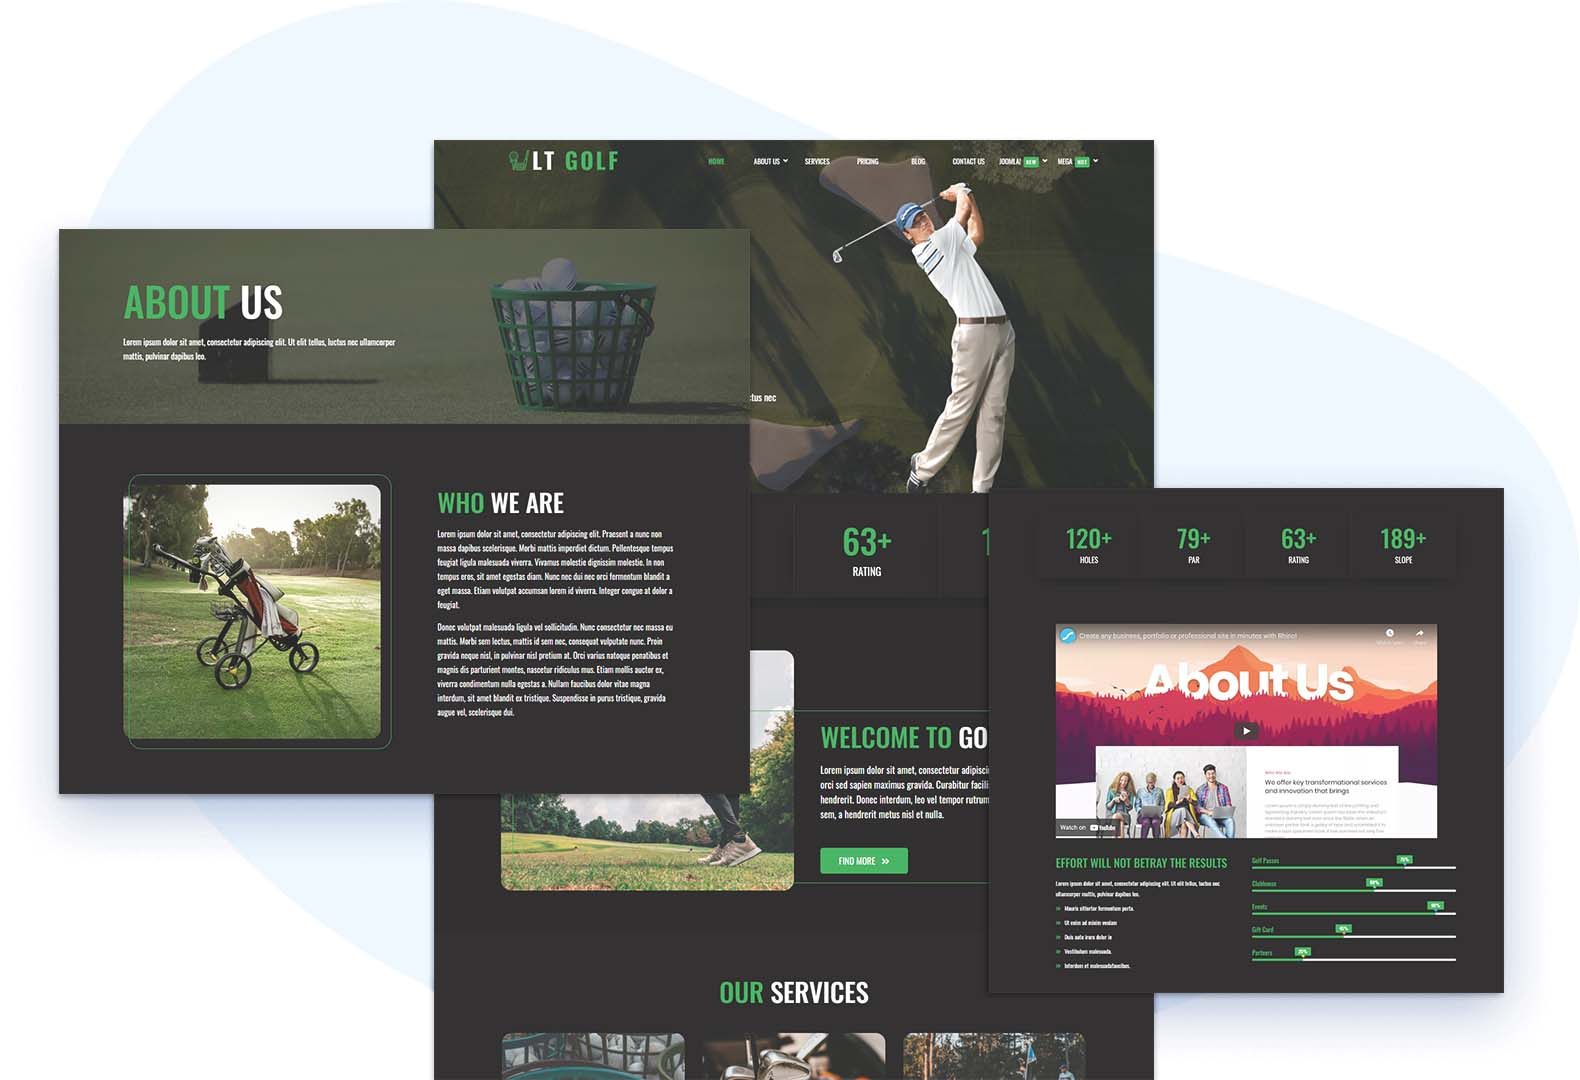 lt-golf-free-responsive-joomla-template-about